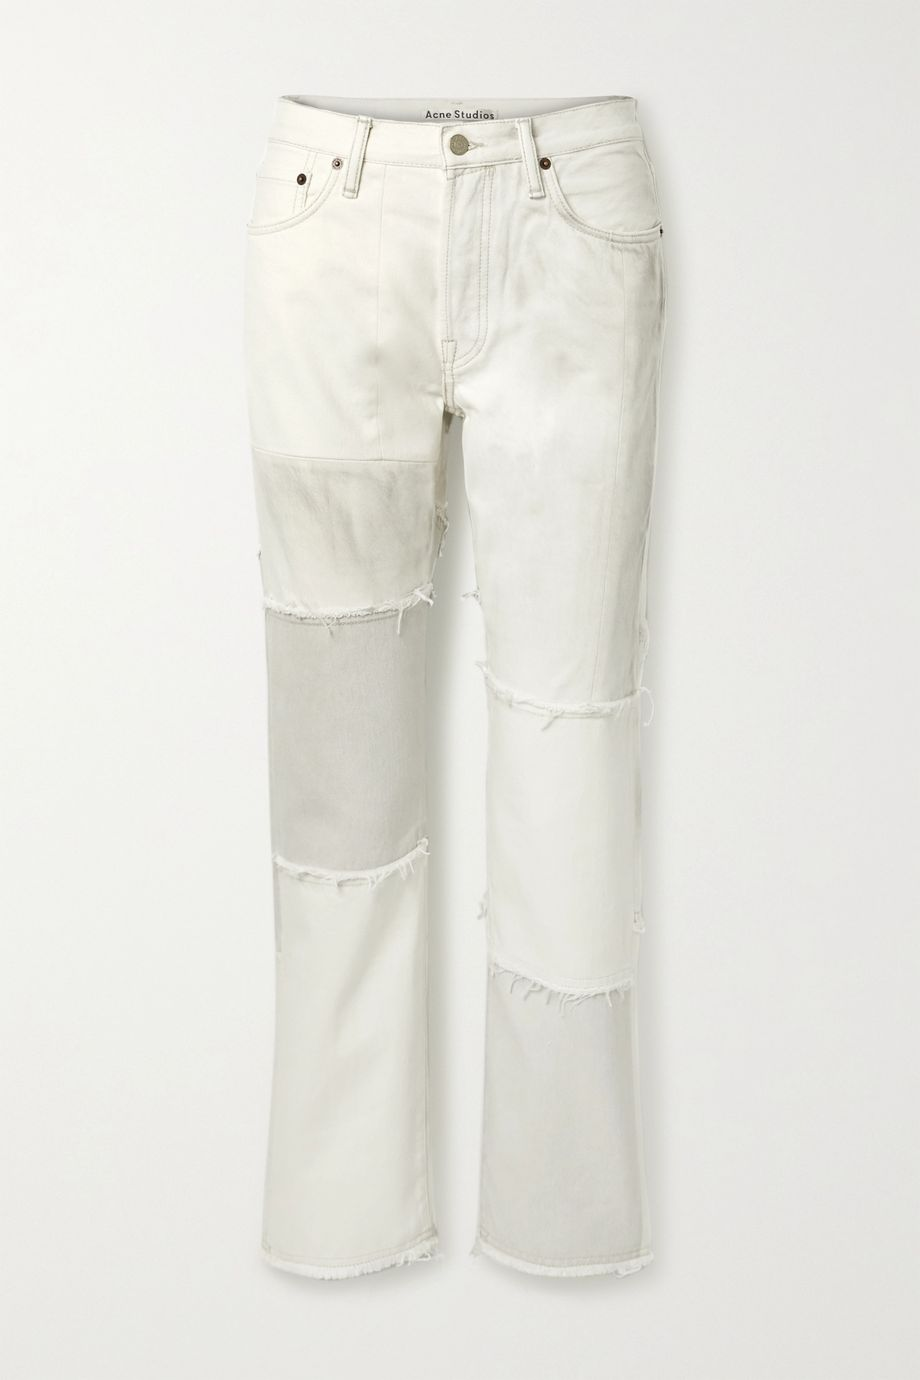 Acne Studios + NET SUSTAIN 1997 frayed patchwork organic high-rise straight-leg jeans